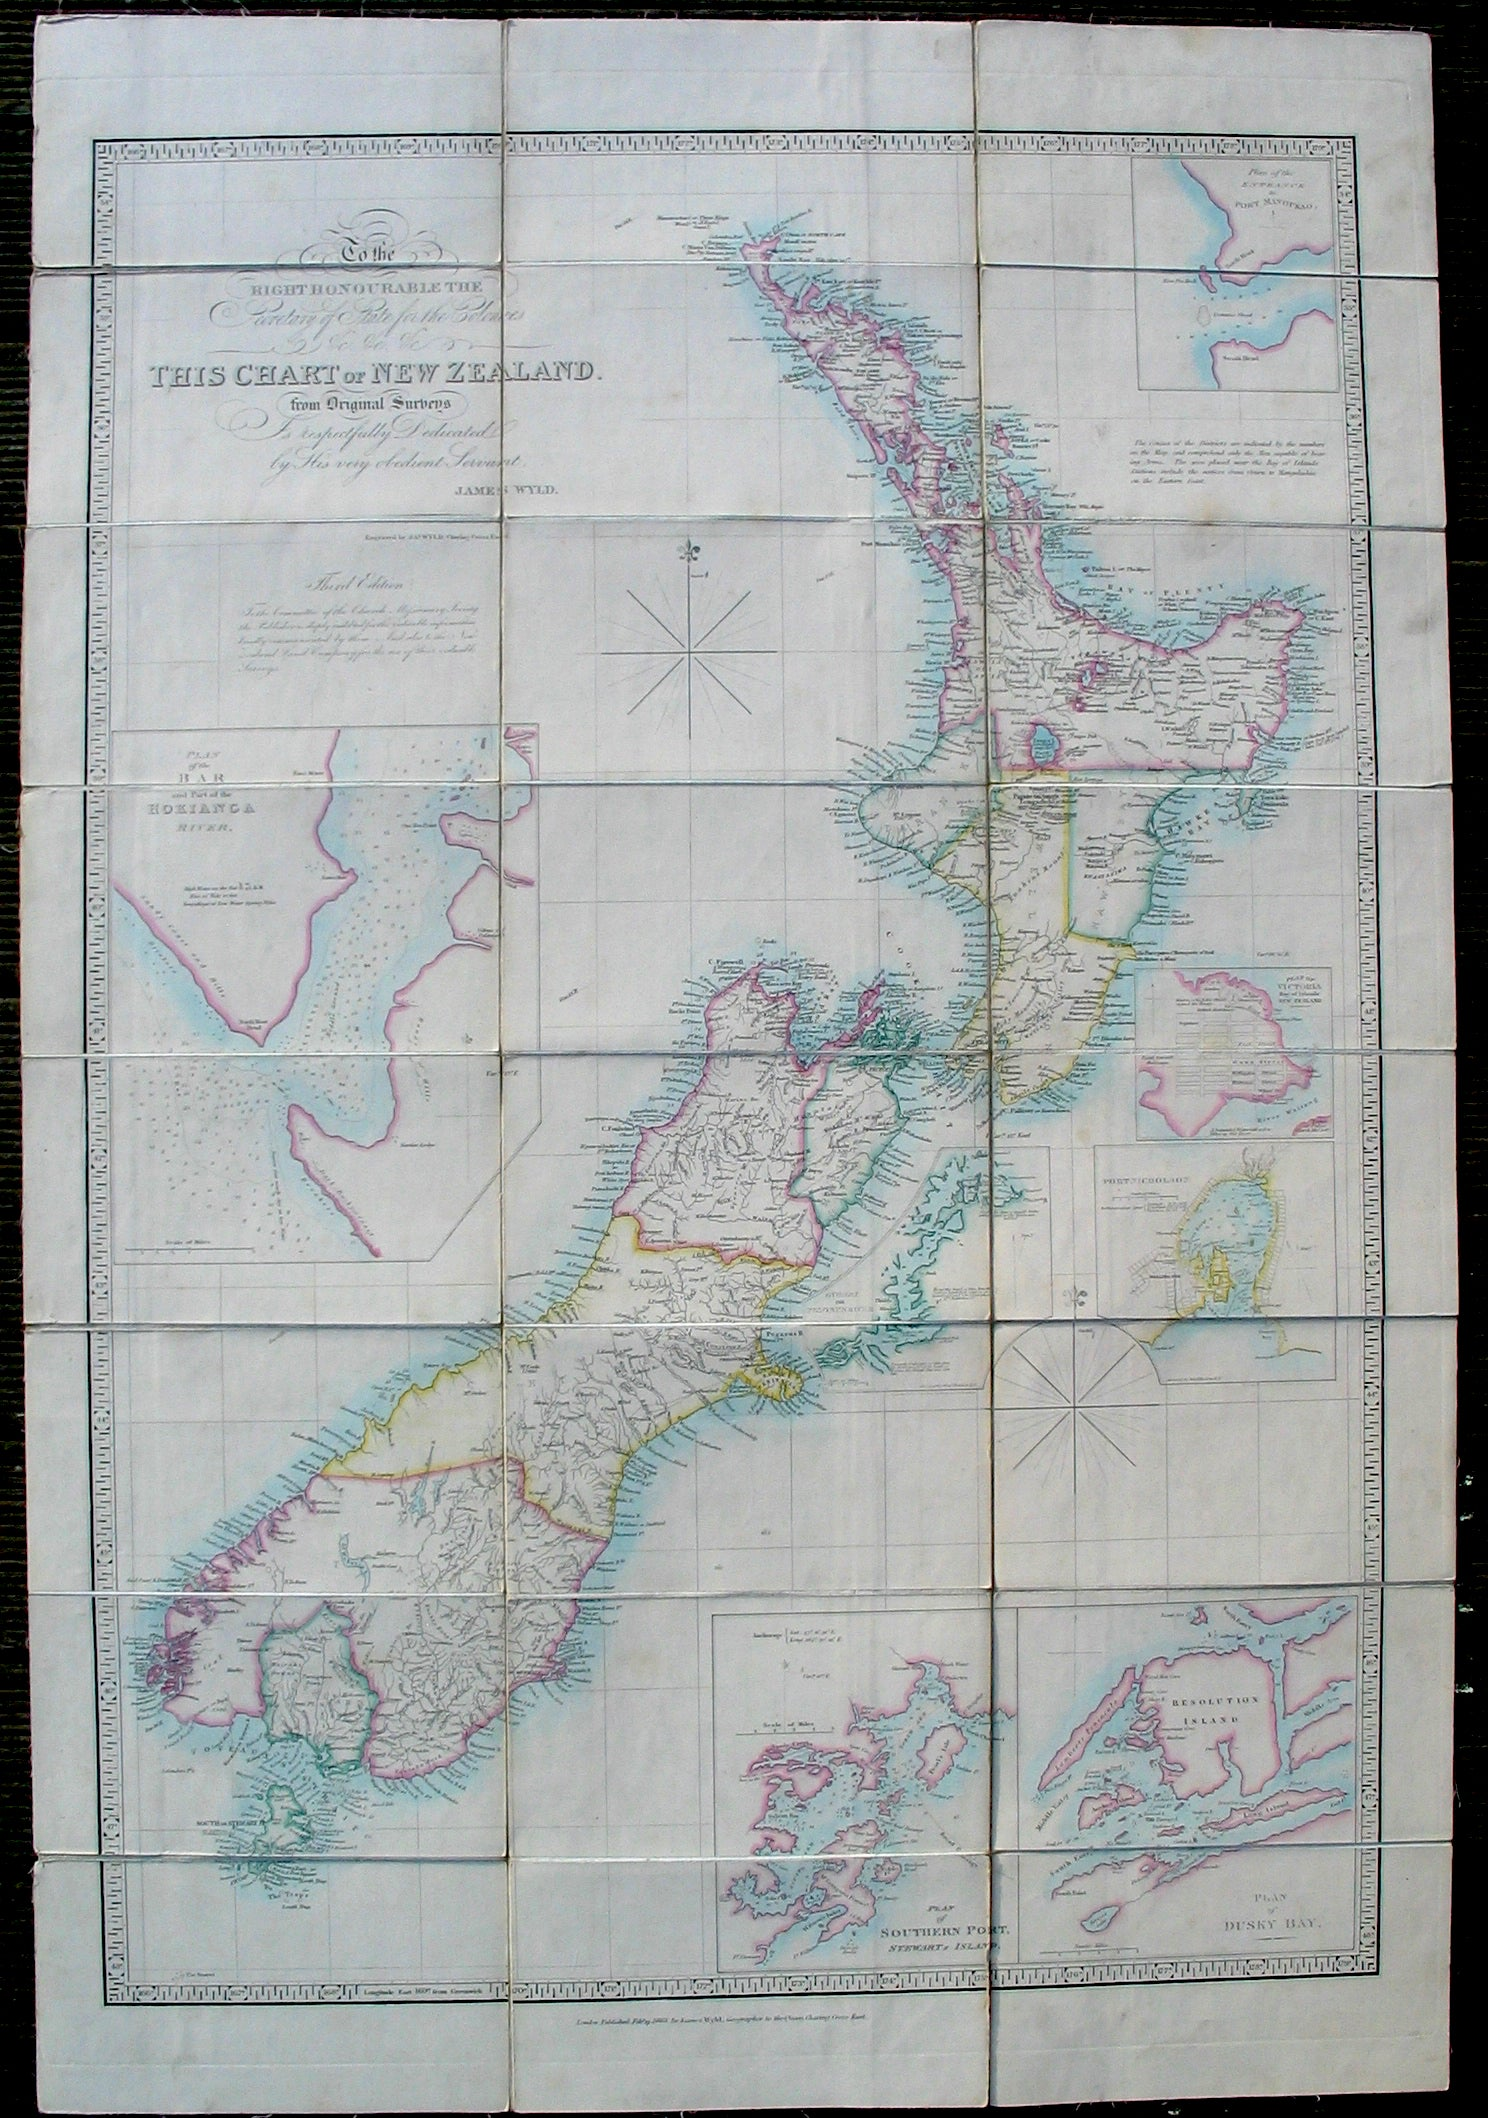 Folding emigration map of New Zealand by James Wyld